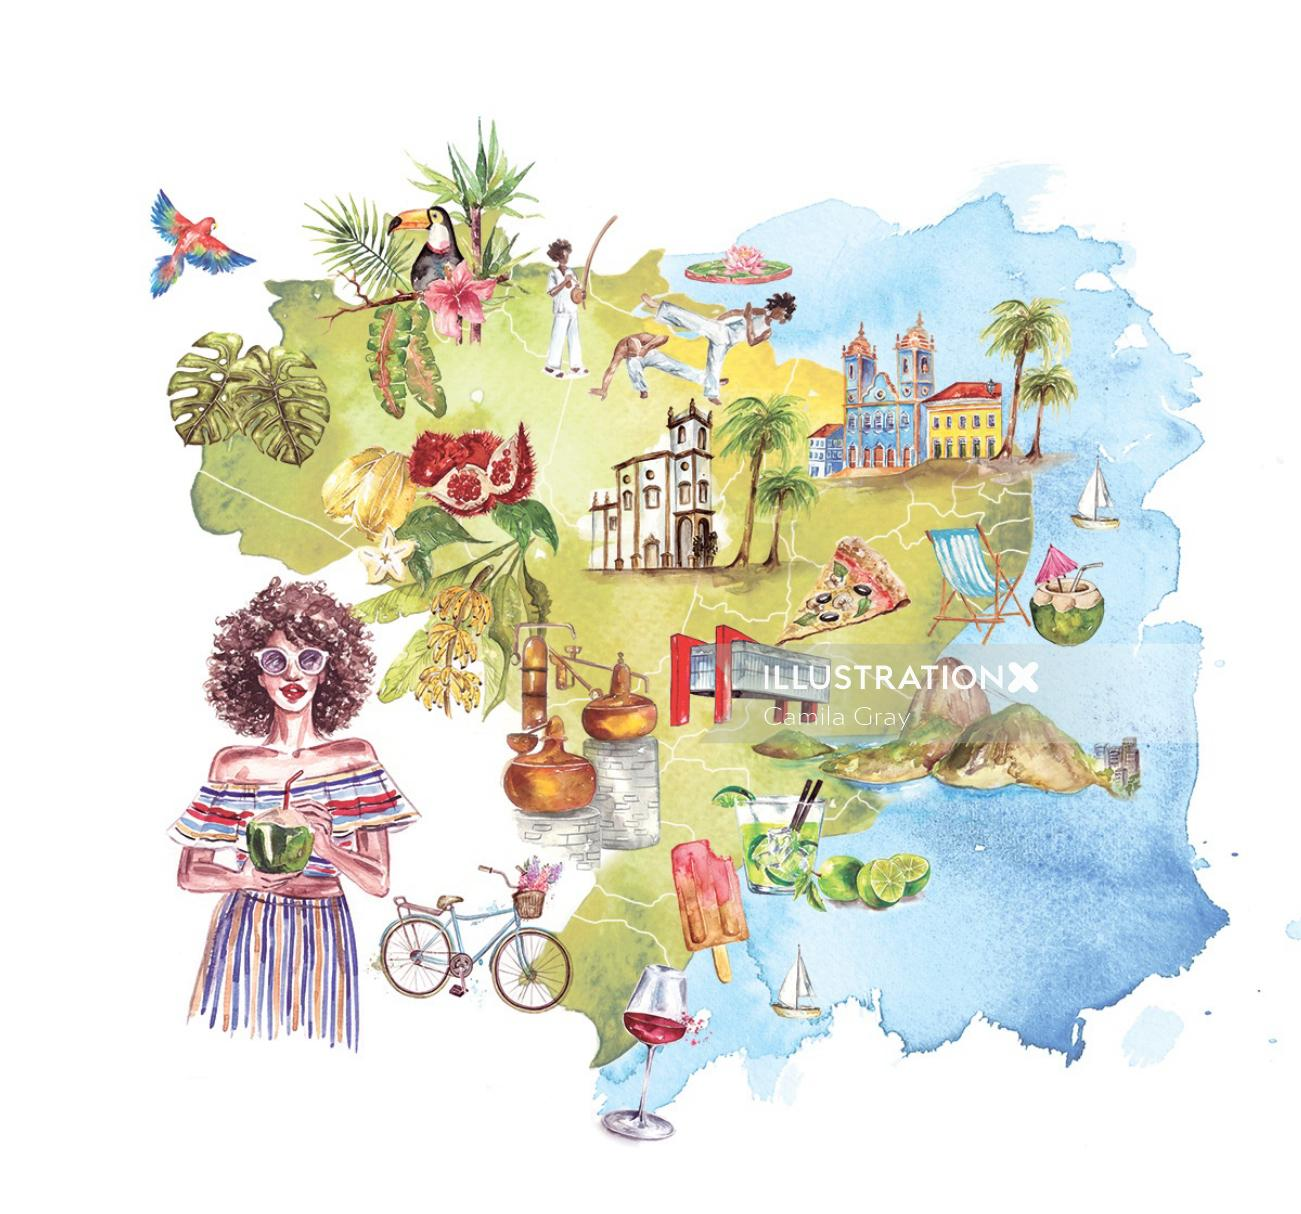 Map illustrated by Camila Gray